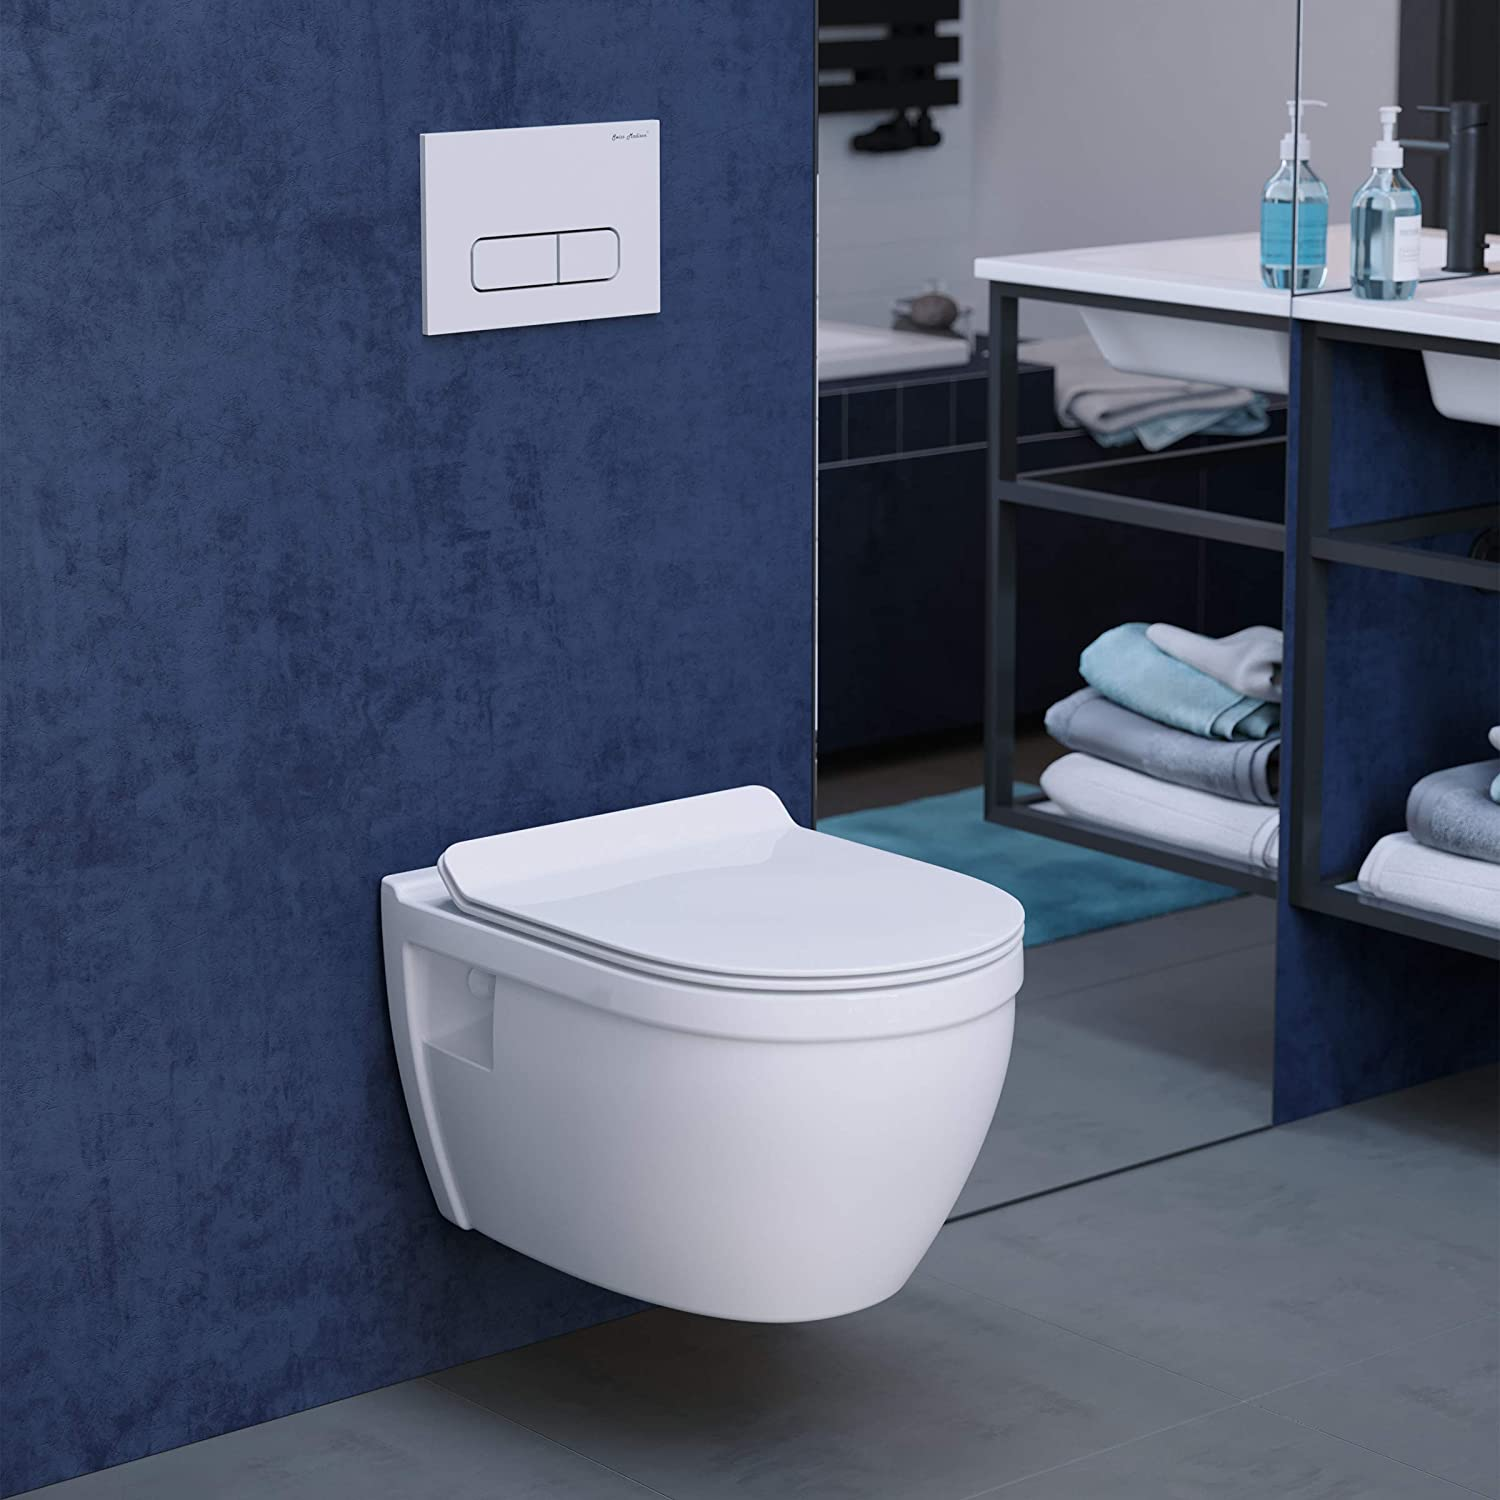 Wall Mounted toilet can make for a very beautiful bathroom